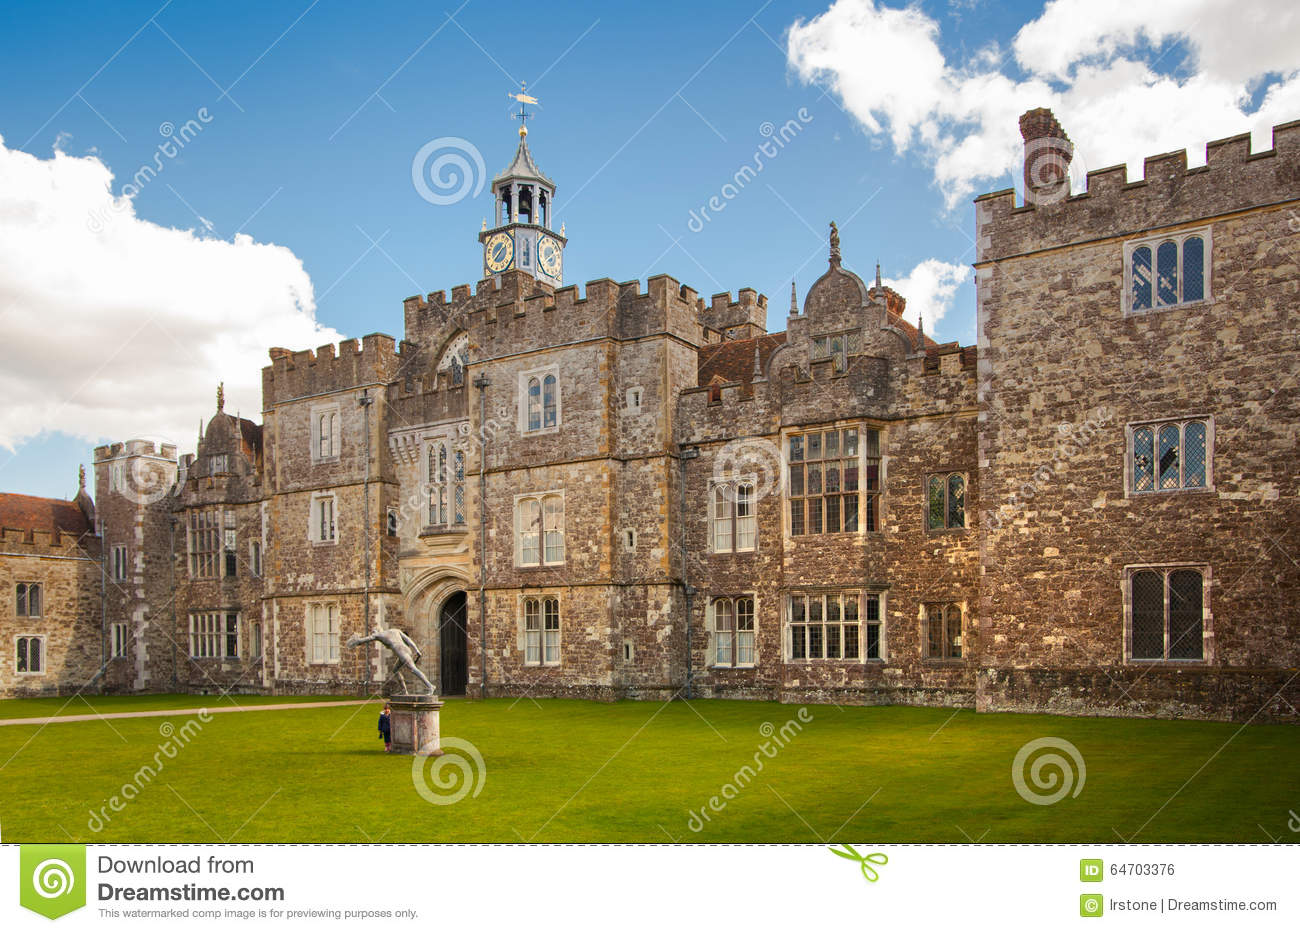 Sevenoaks Old English Mansion 15th Century Cl Ic English Countryside House